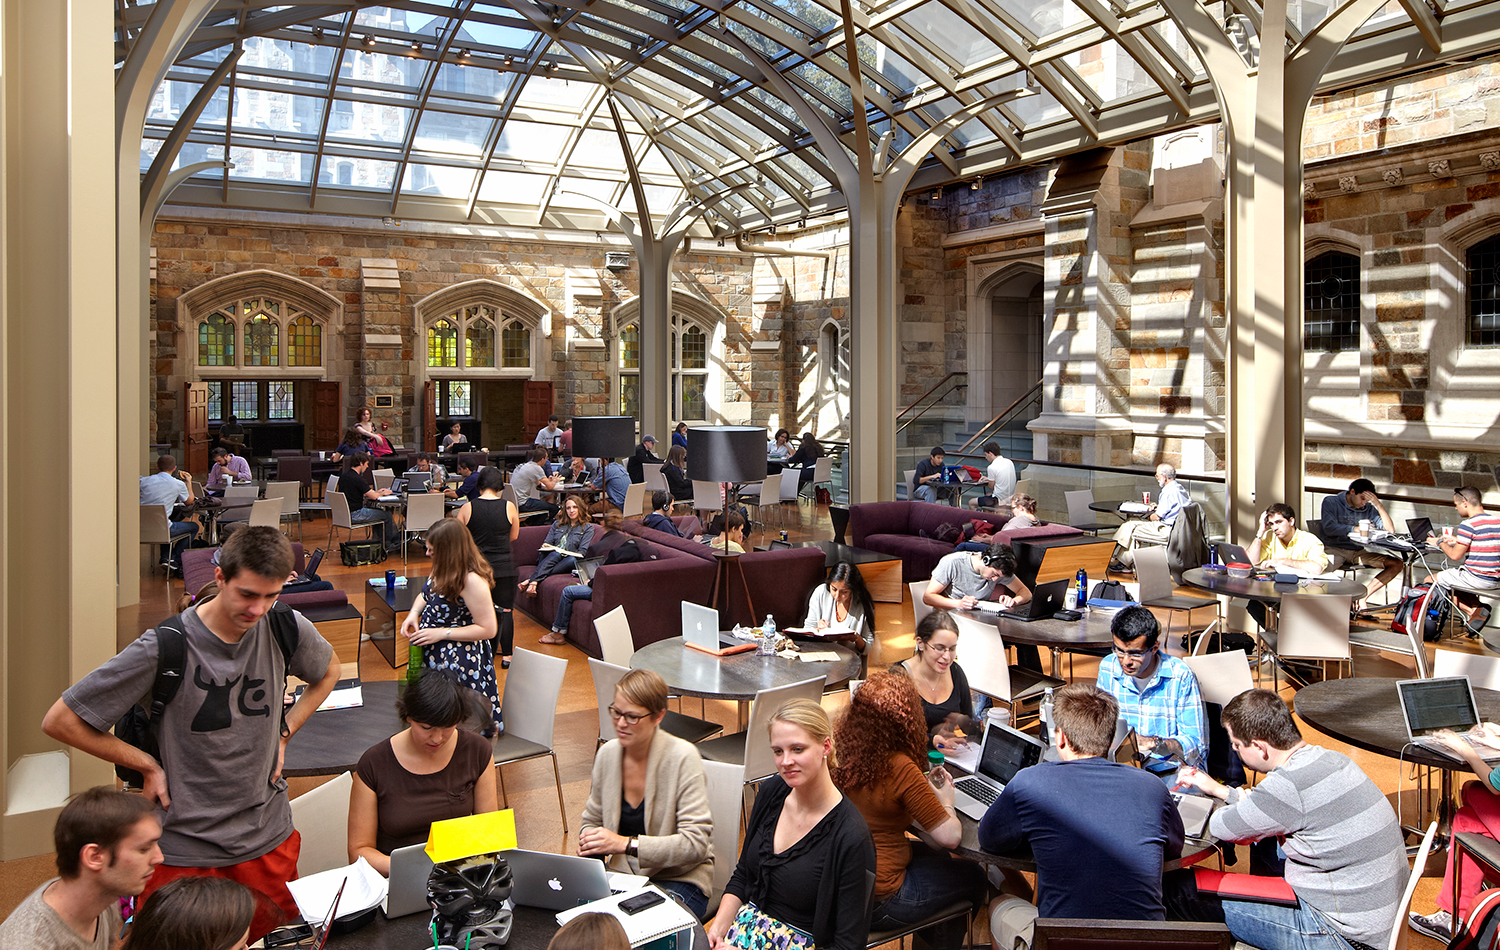 UofM_Law_School_Commons_AM_Int-093-fused-dc2.jpg